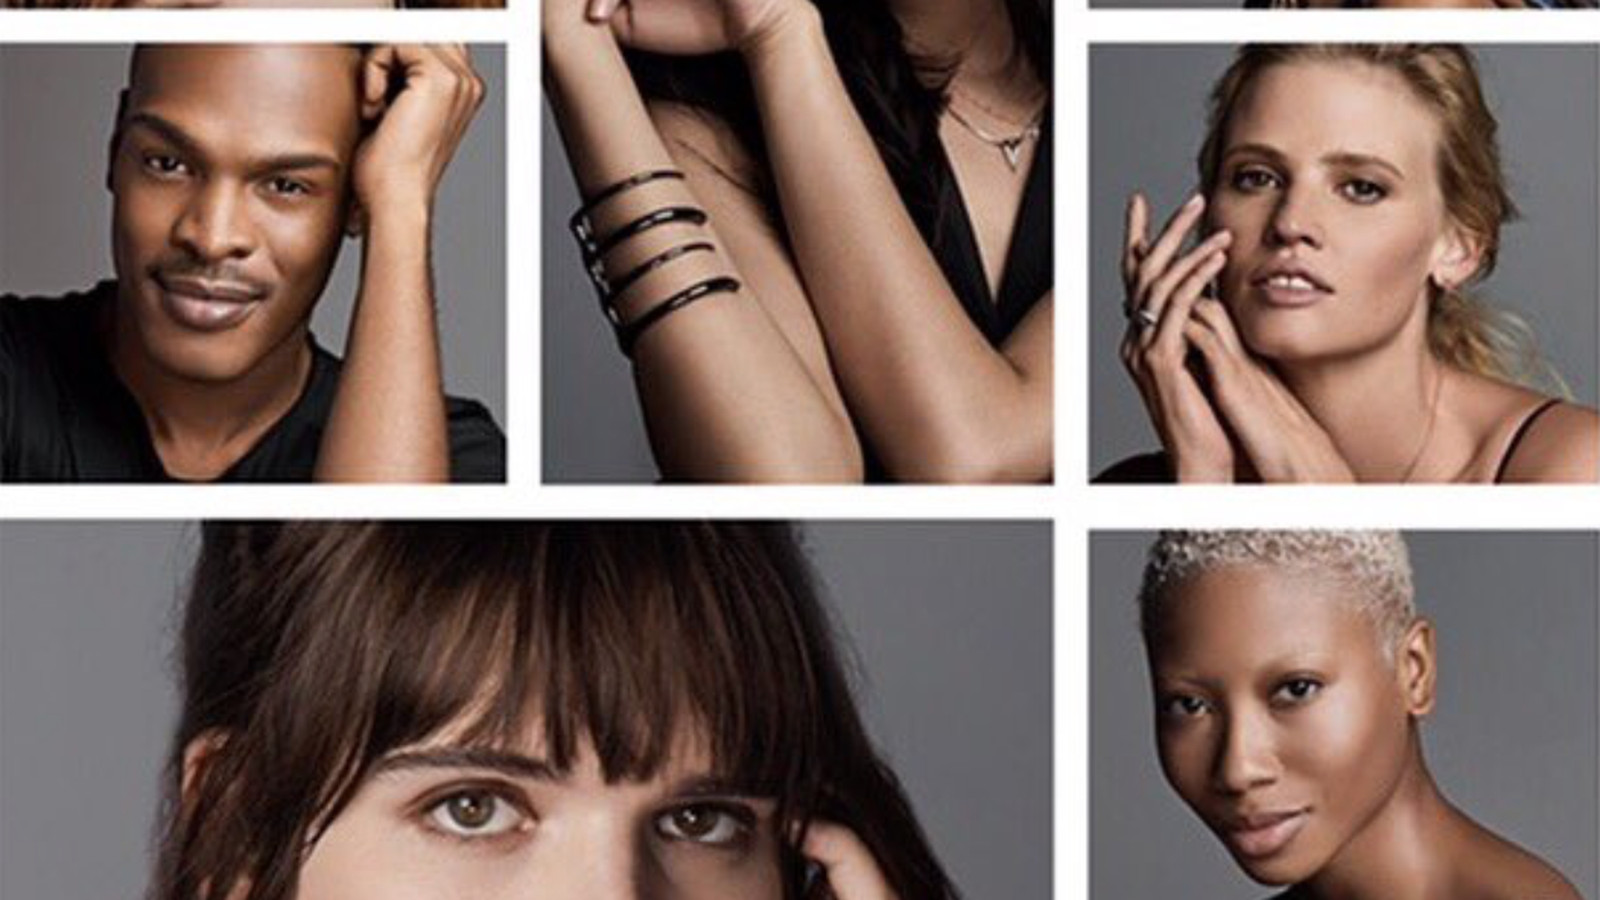 Hari Nef Stars in What Might Be the Most Diverse Beauty Ad Ever